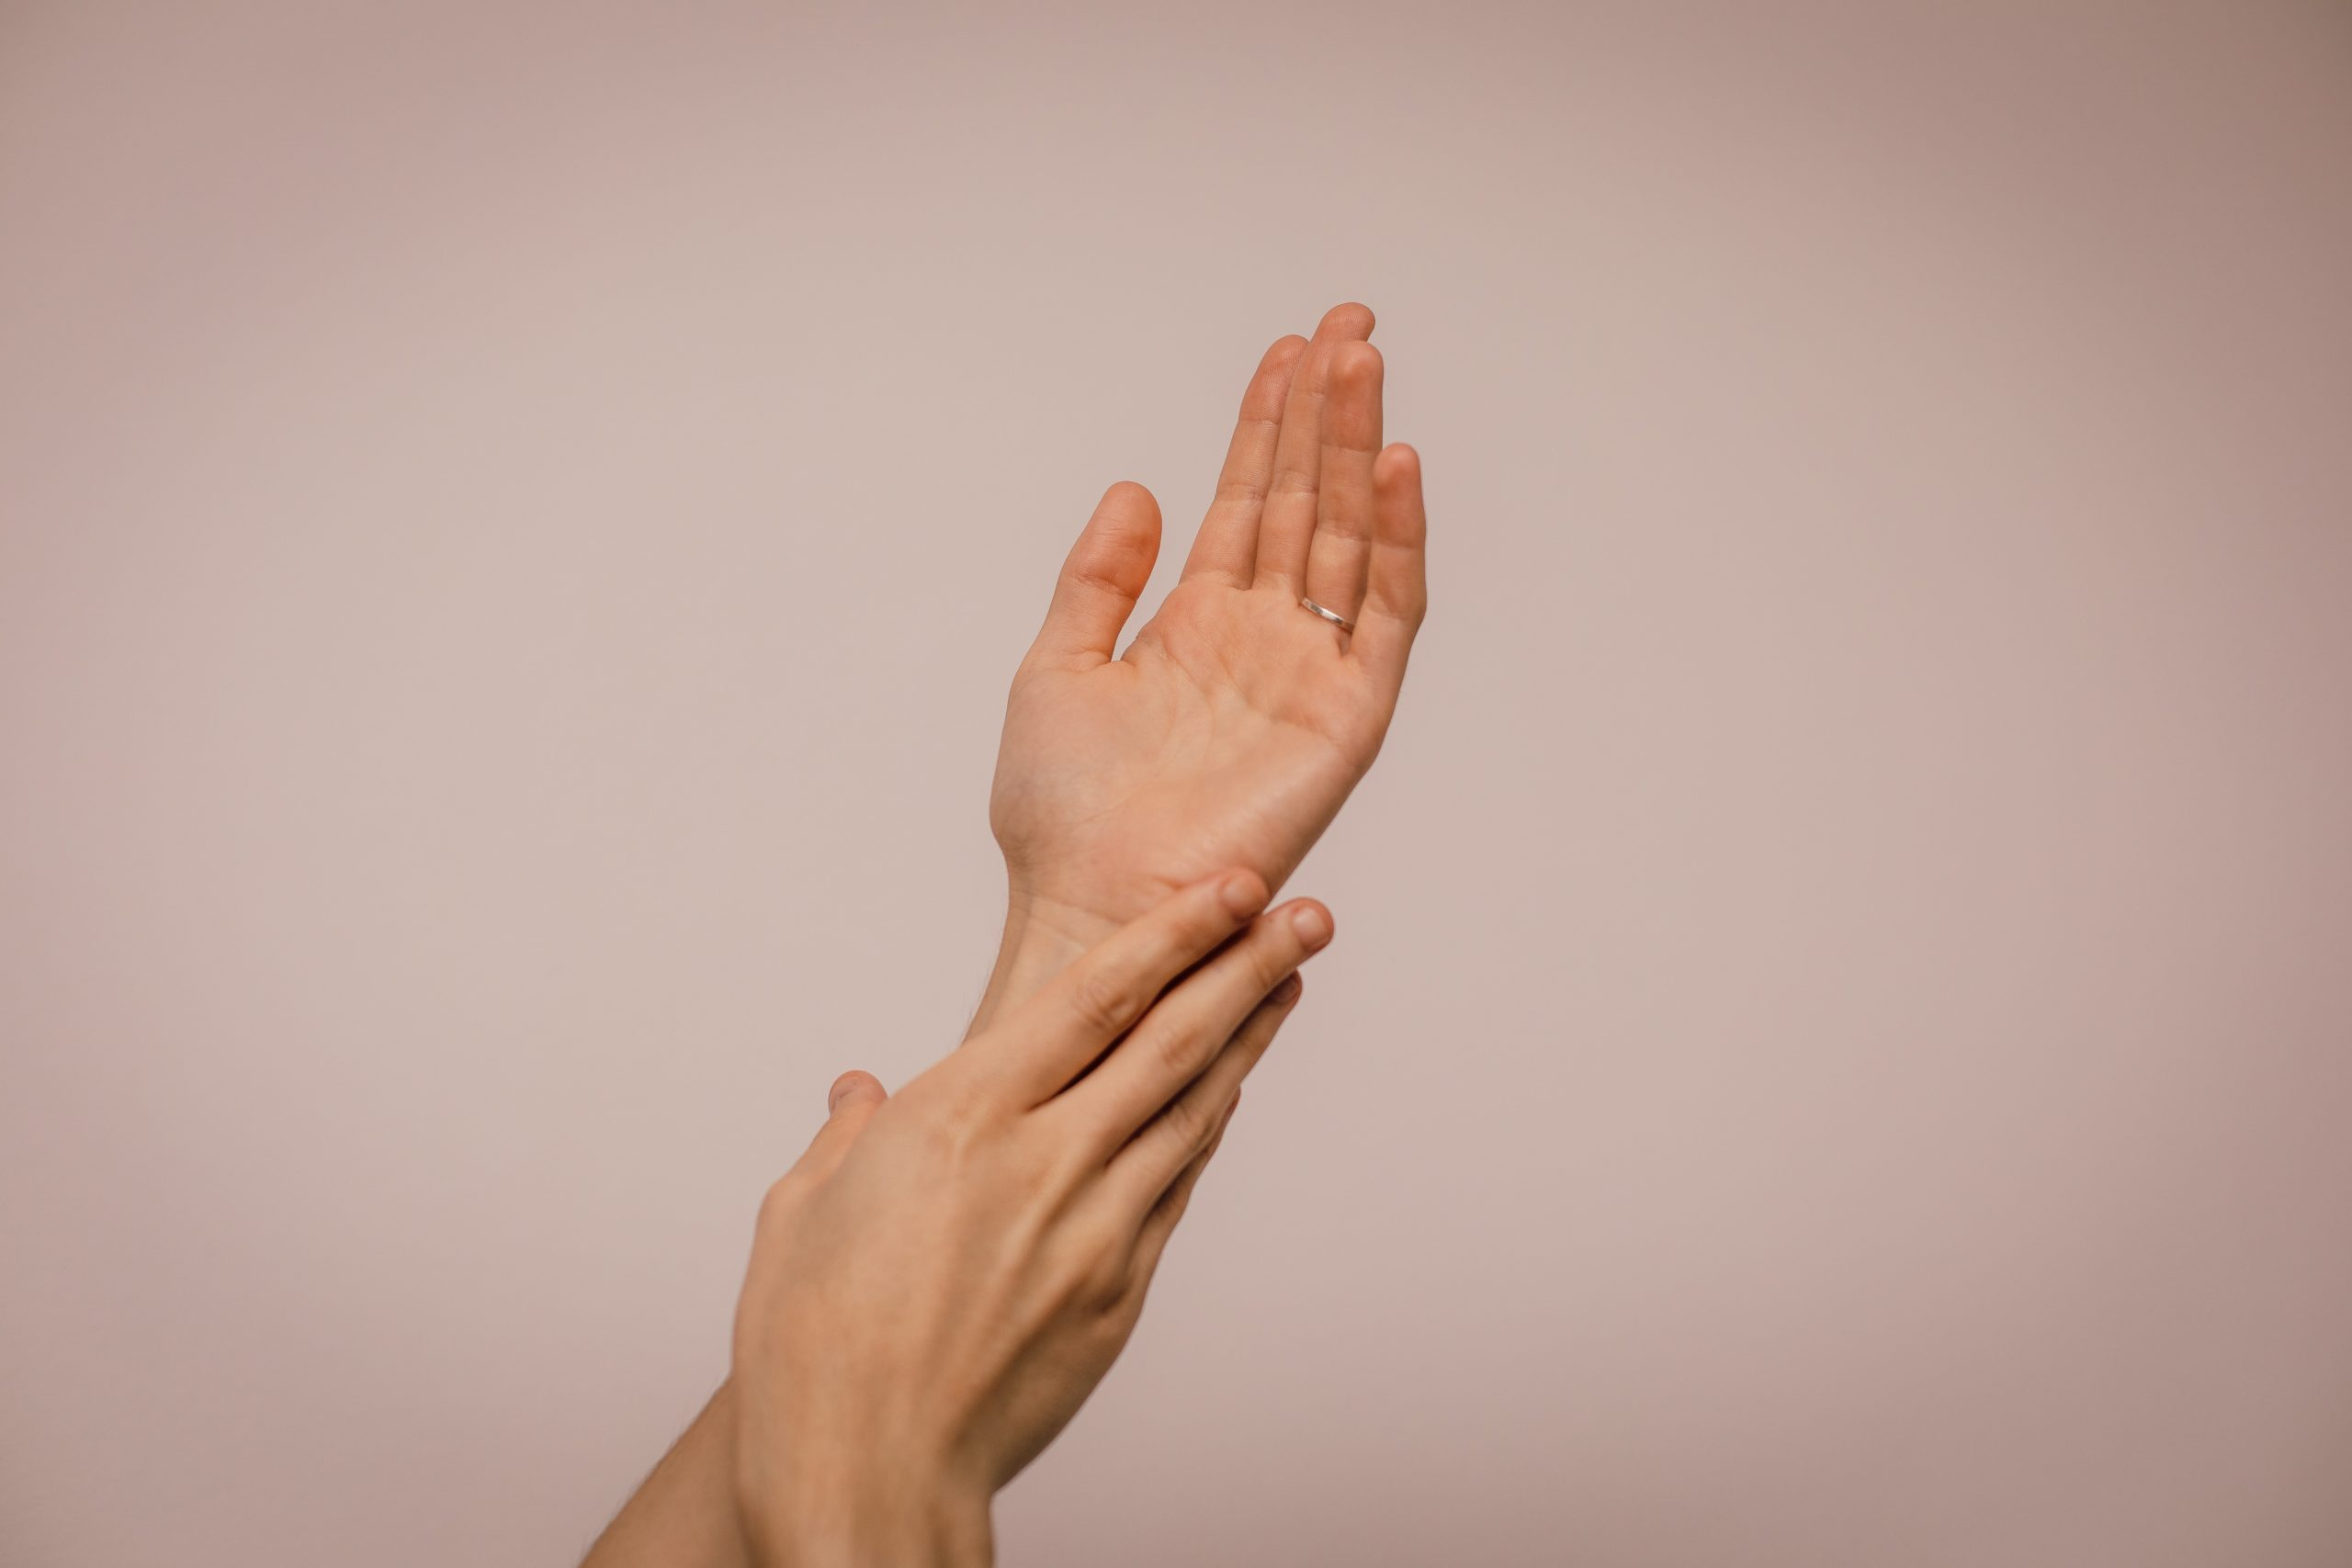 You are currently viewing RHEUMATISM: WHY DO I HAVE PAIN IN MY KNEE JOINTS AND HANDS?